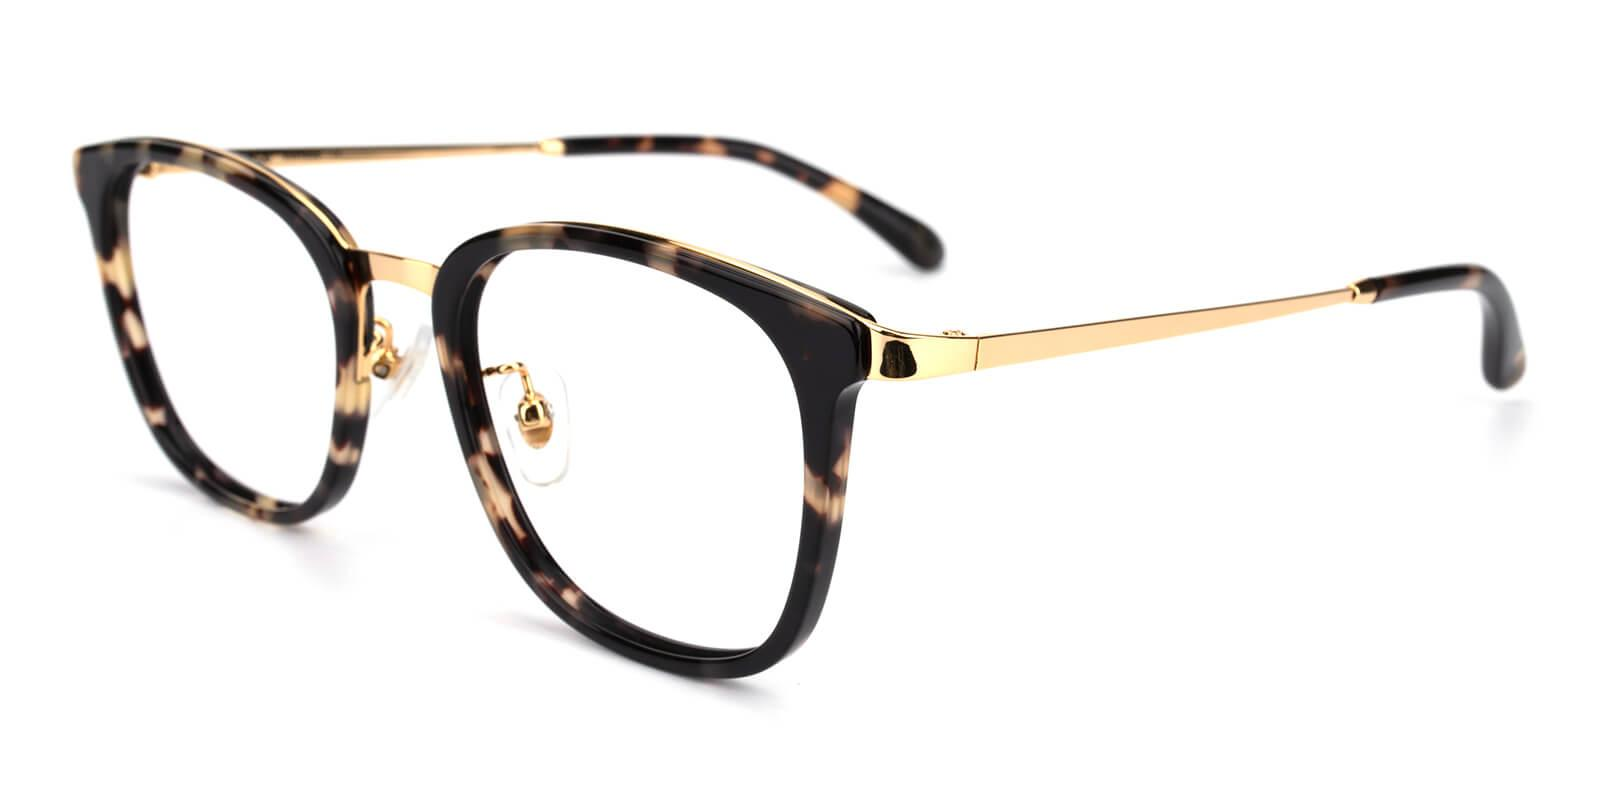 Keronito-Leopard-Square-Metal-Eyeglasses-additional1